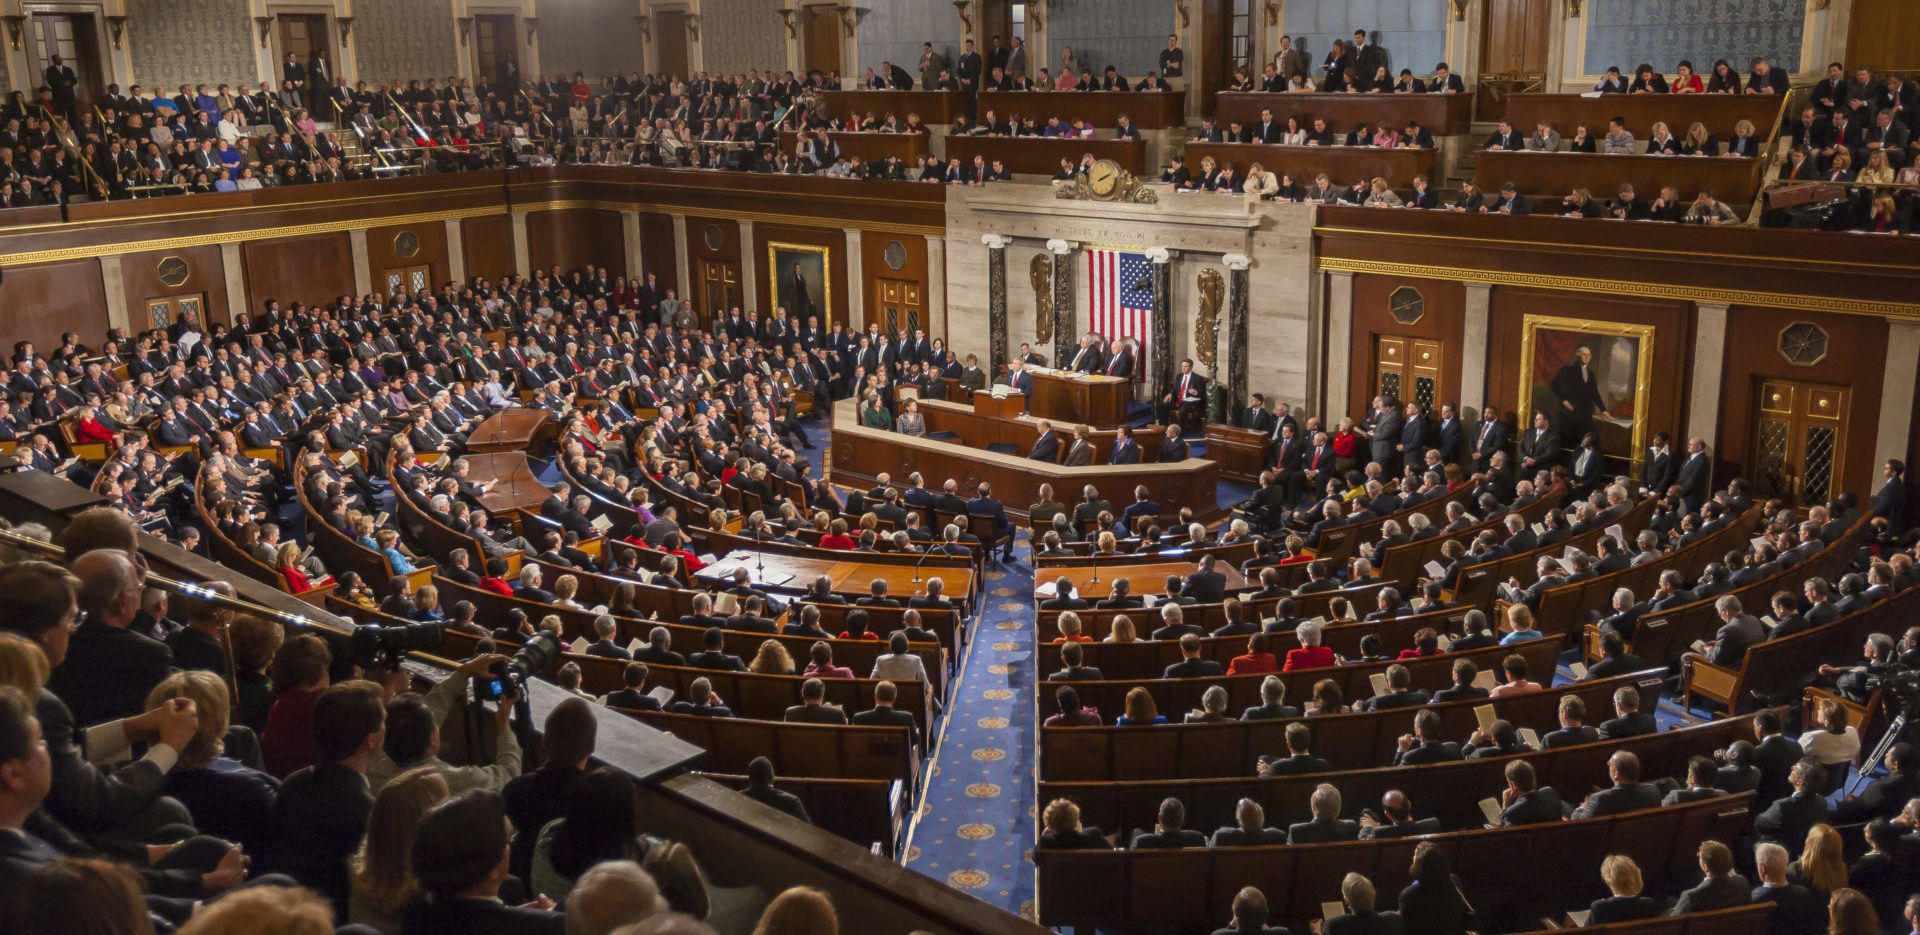 AIPAC applauds lawmakers for backing full US aid to Israel, without conditions